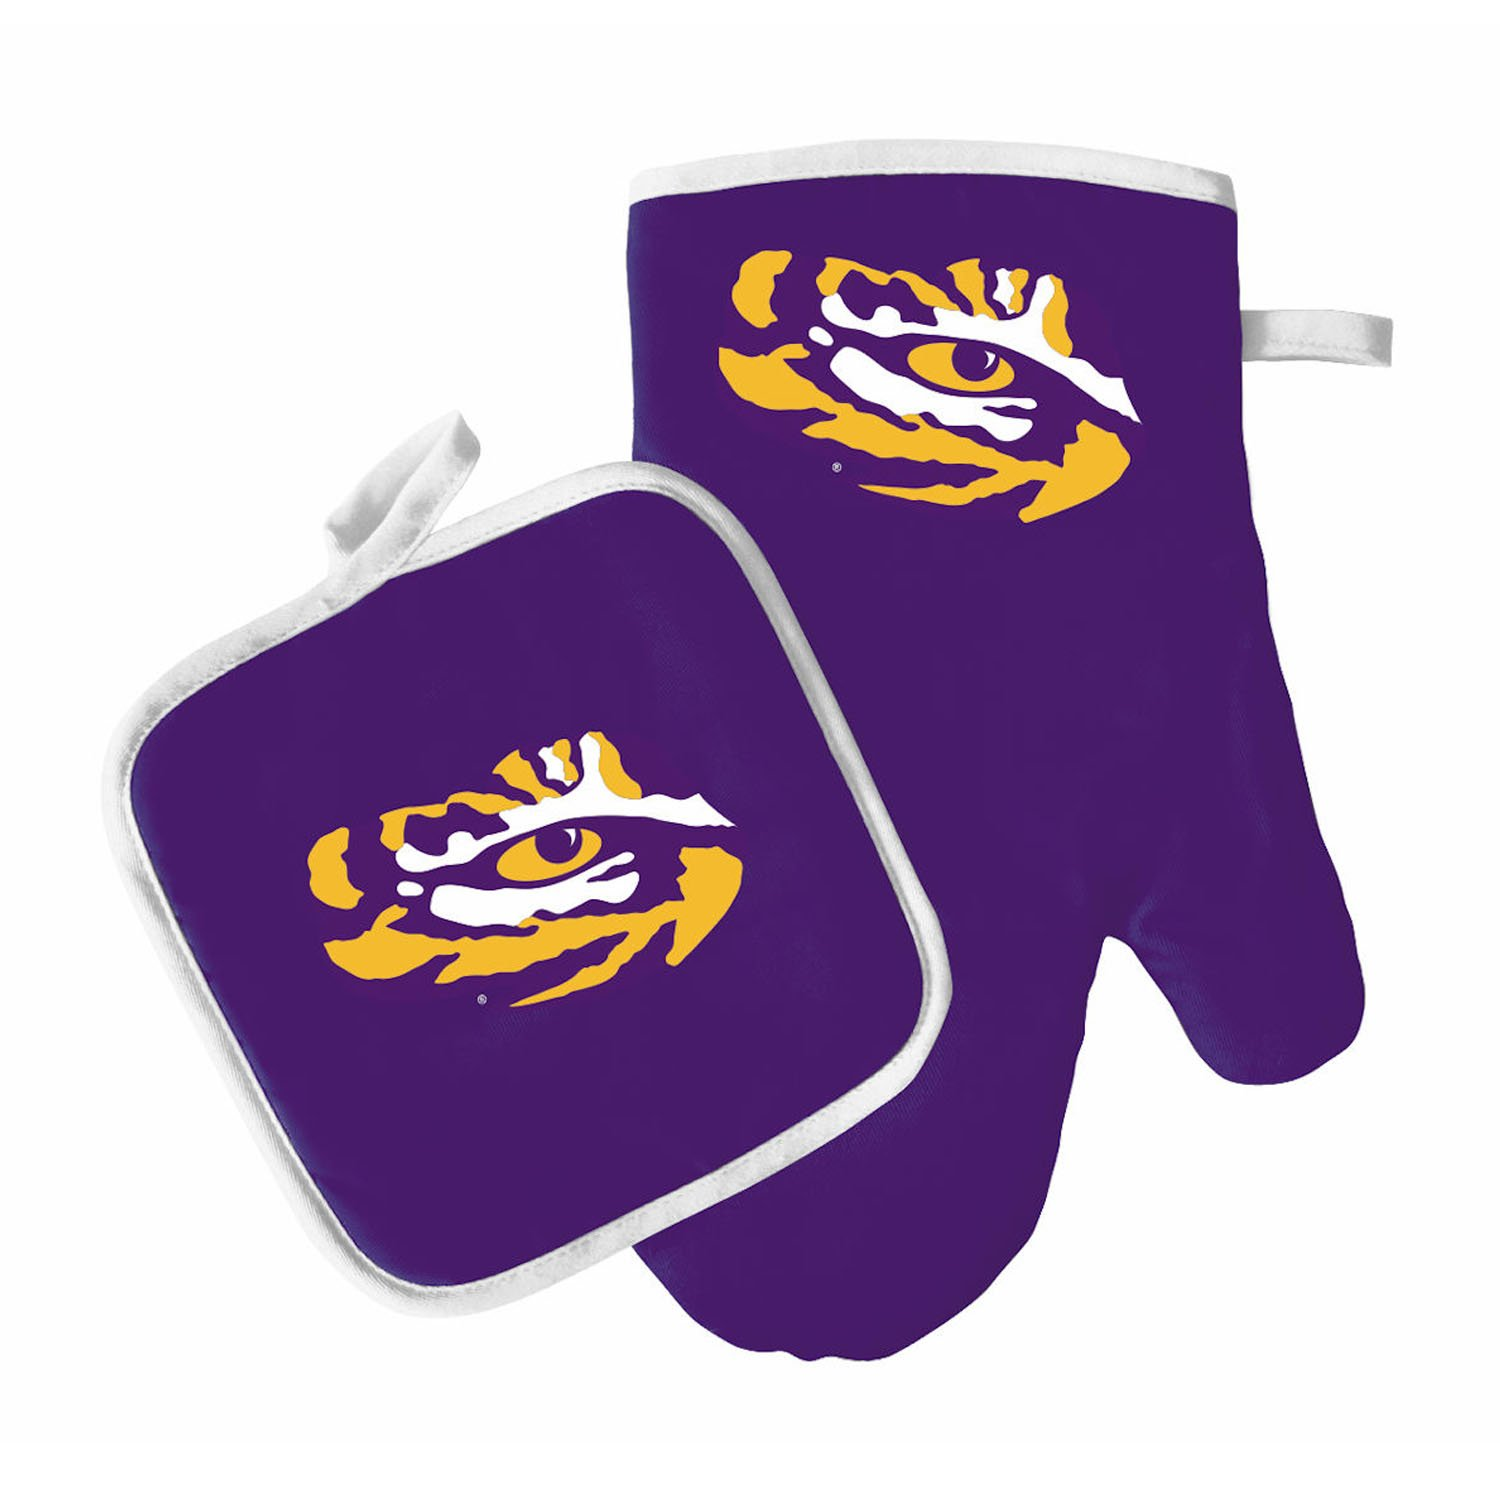 Pro Specialties Group Oven Mitt and Pot Holder Set - Barbeque BBQ Kitchen Backyard Outdoors - NCAA - LSU Tigers